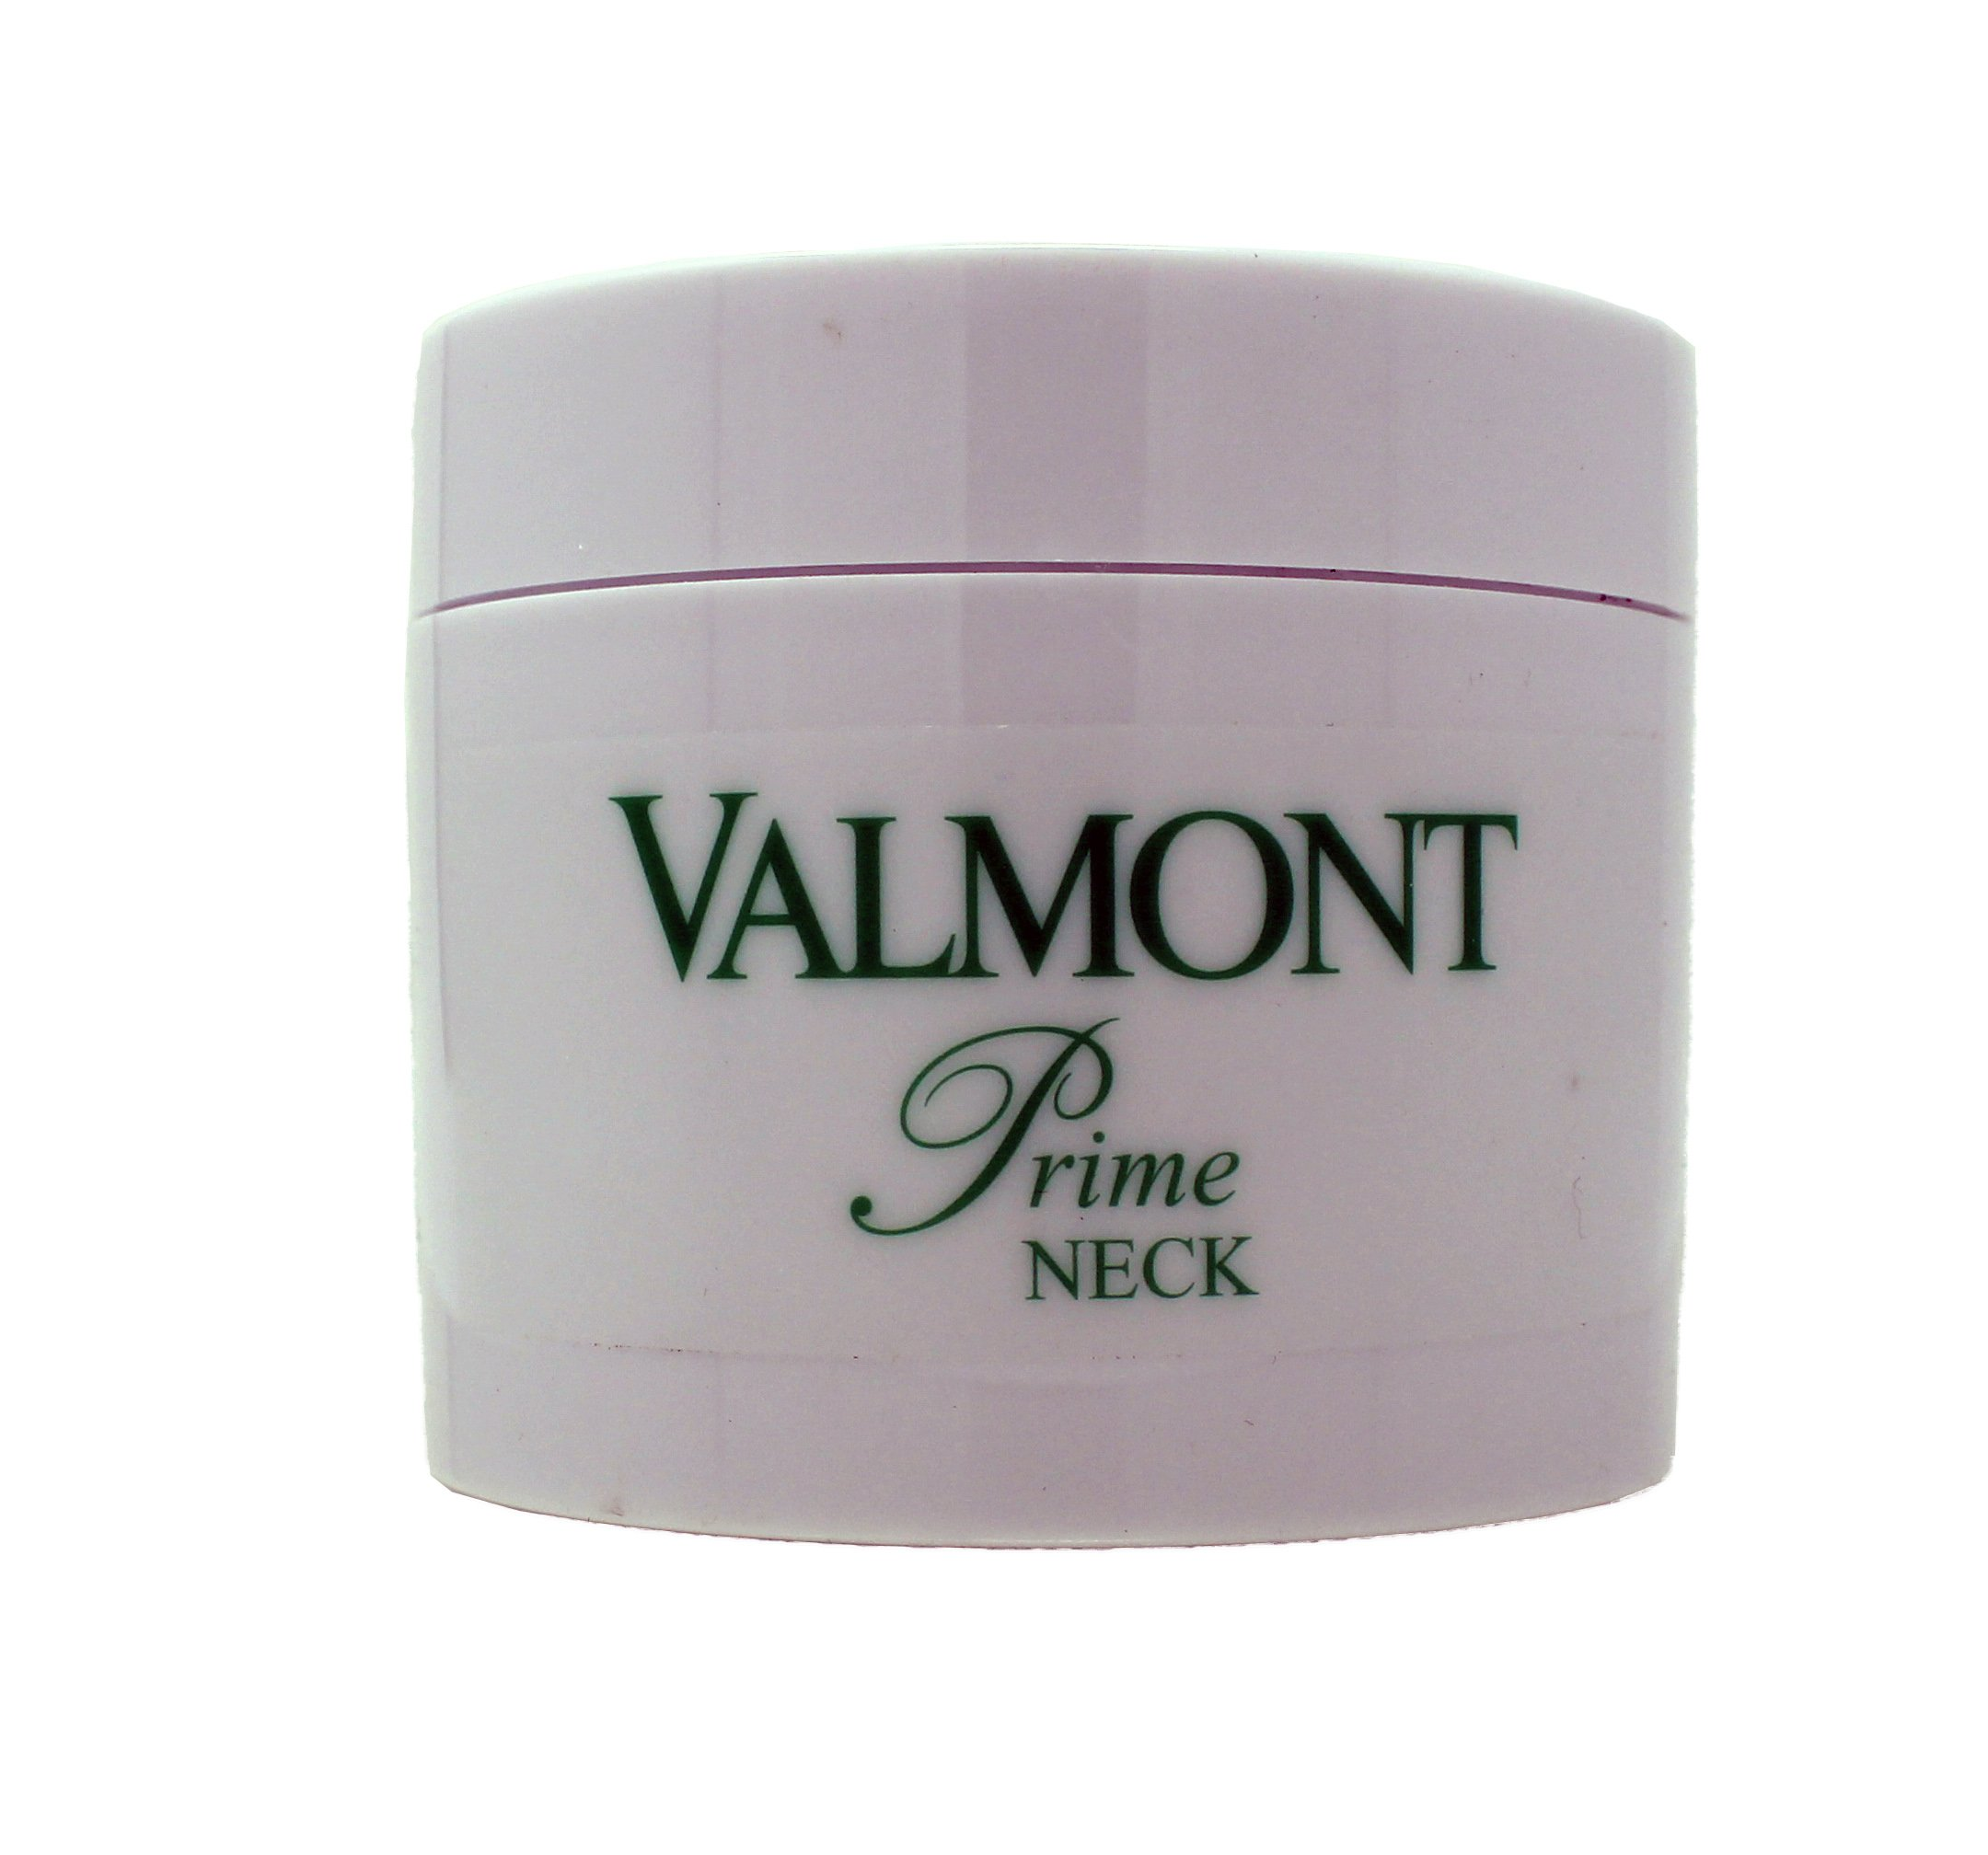 Valmont Prime Neck Restoring Firming Neck Cream (Salon Size) 100ml/3.5oz